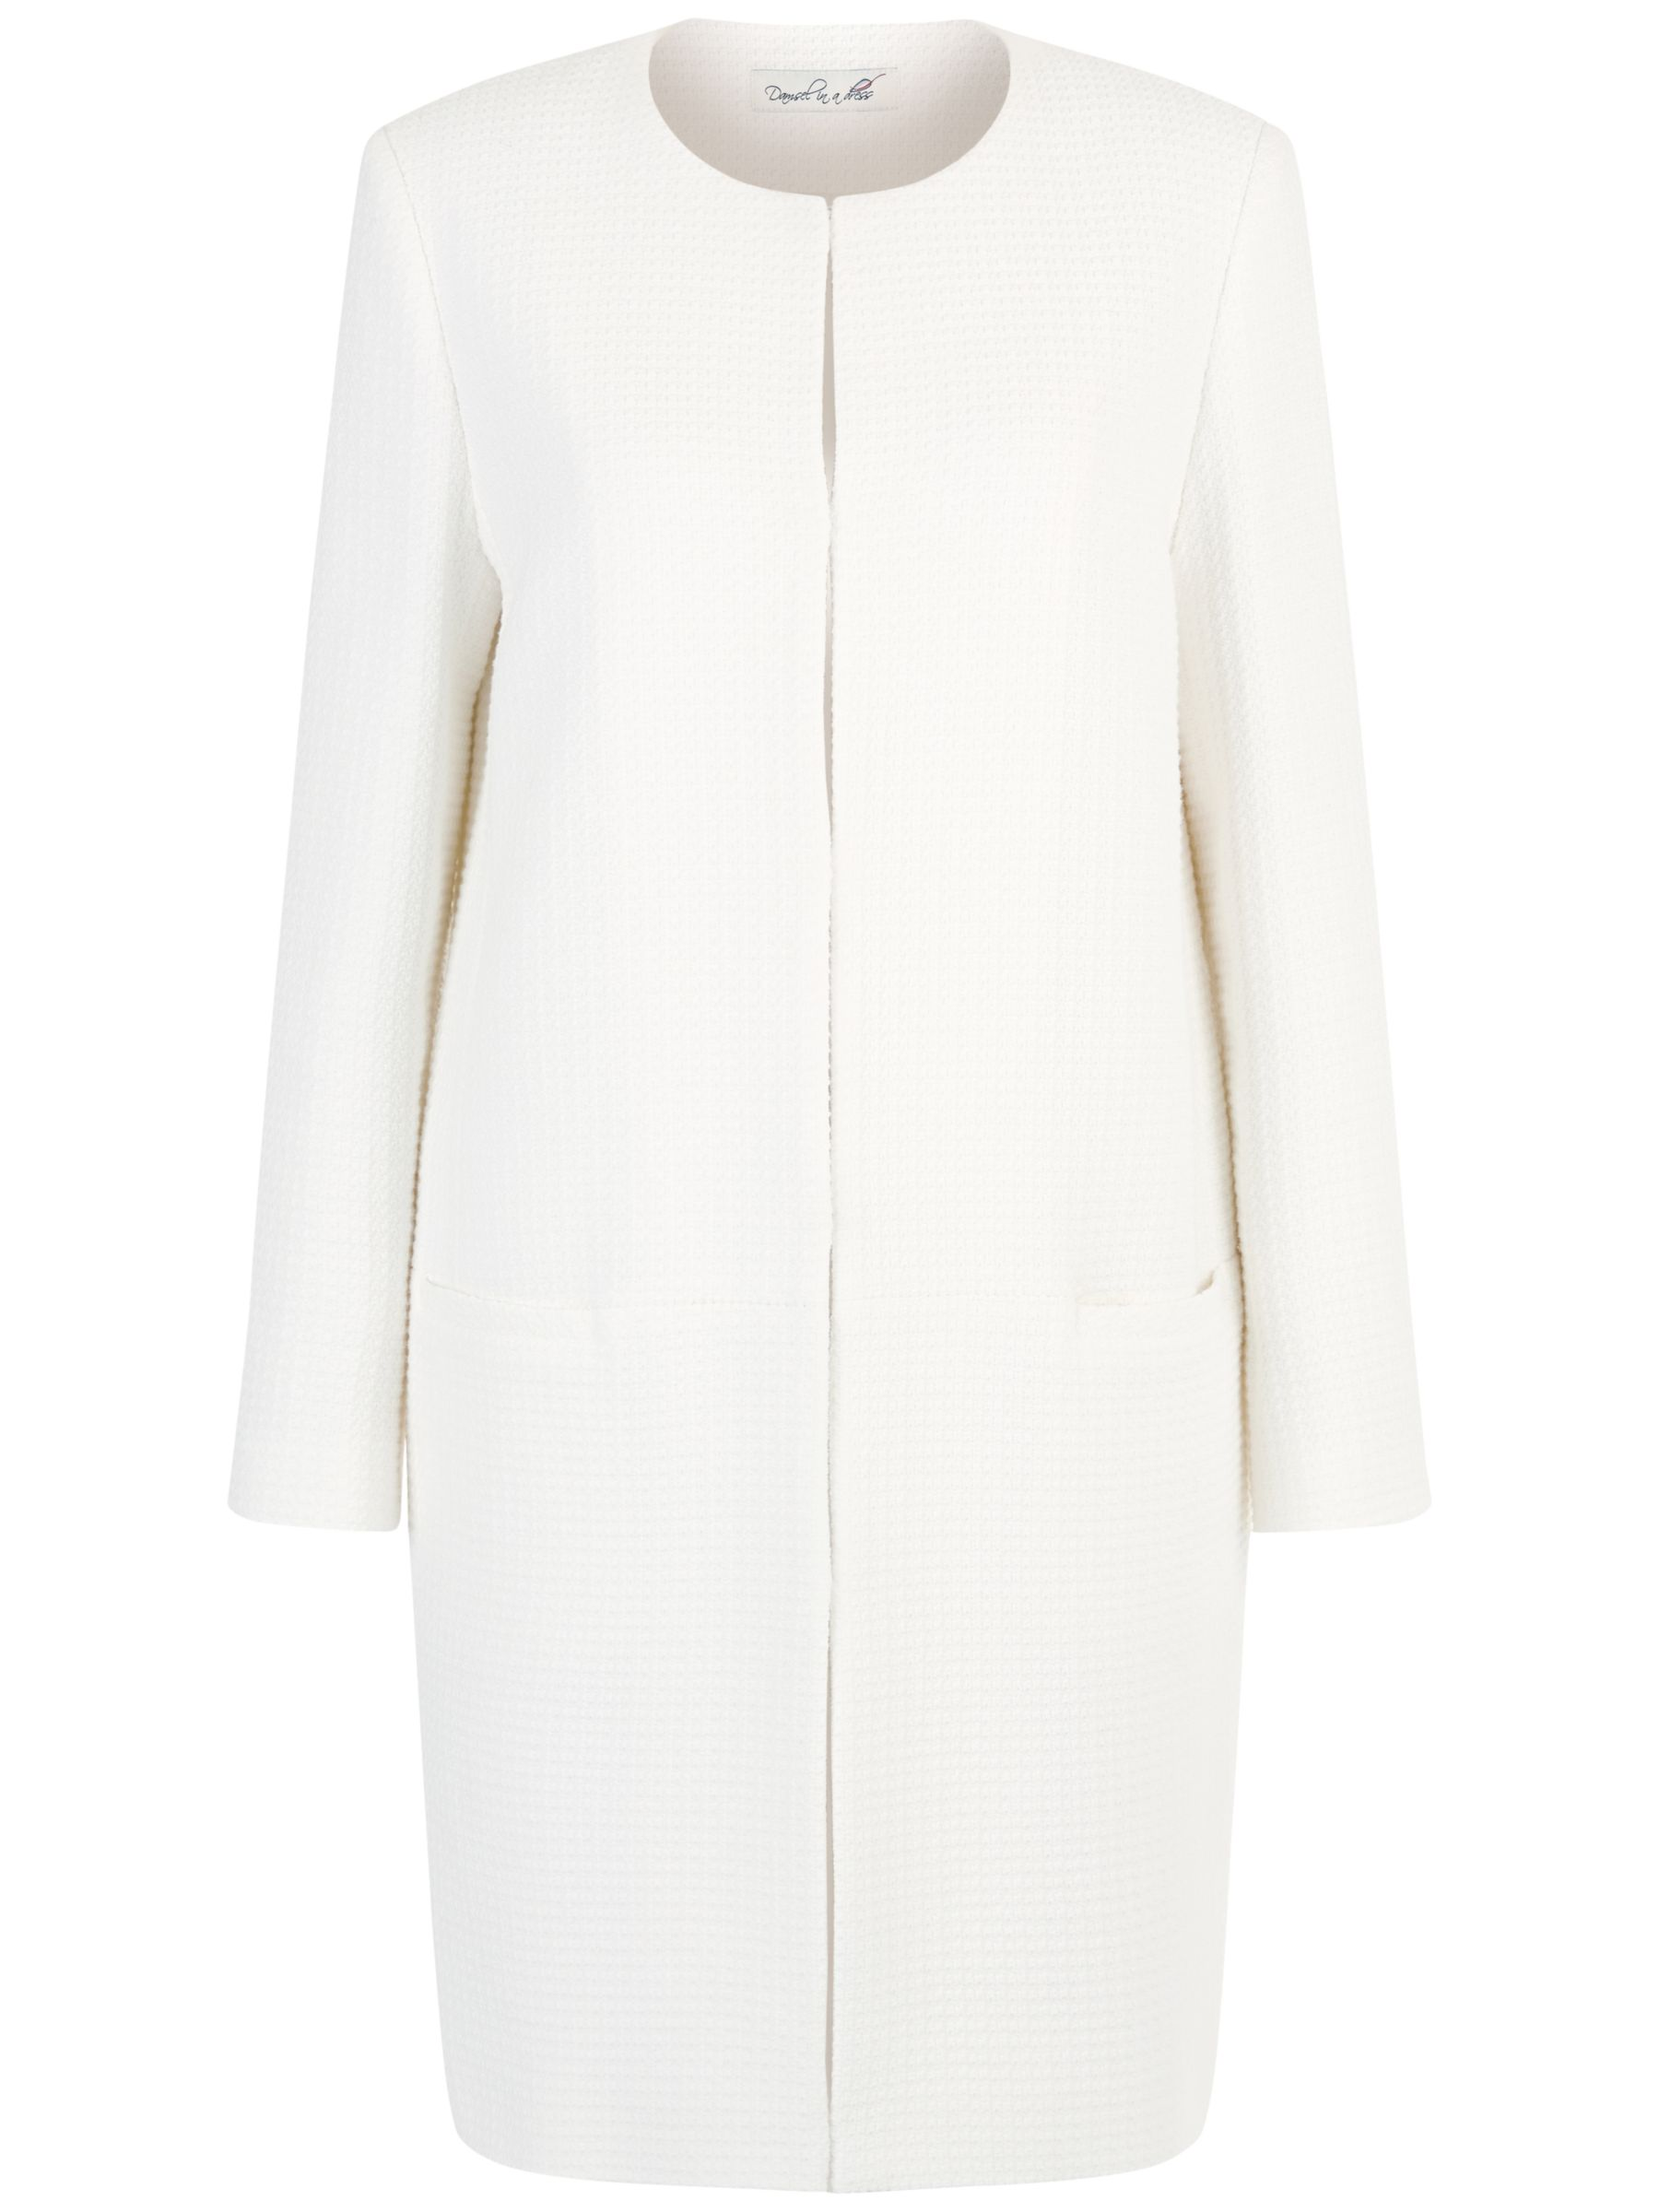 Damsel in a dress Damsel in a dress Lola Cocoon Jacket, Cream